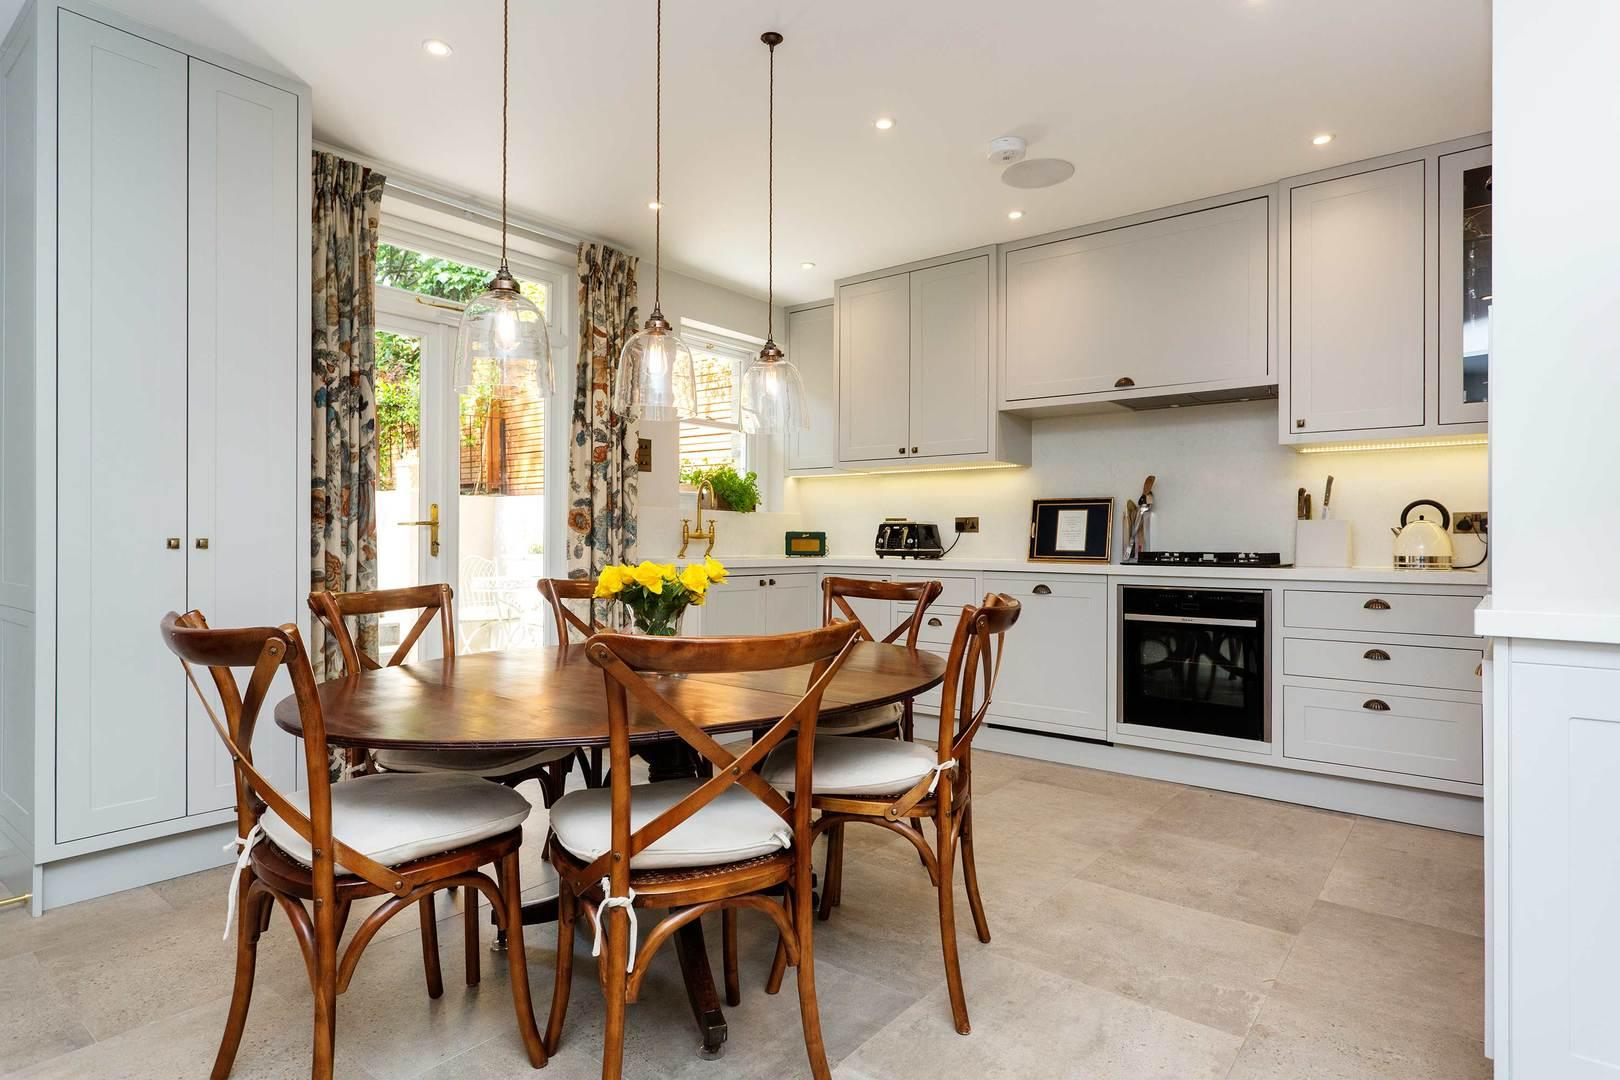 Property Image 2 - Stylish Putney Home by the River with Attractive Garden